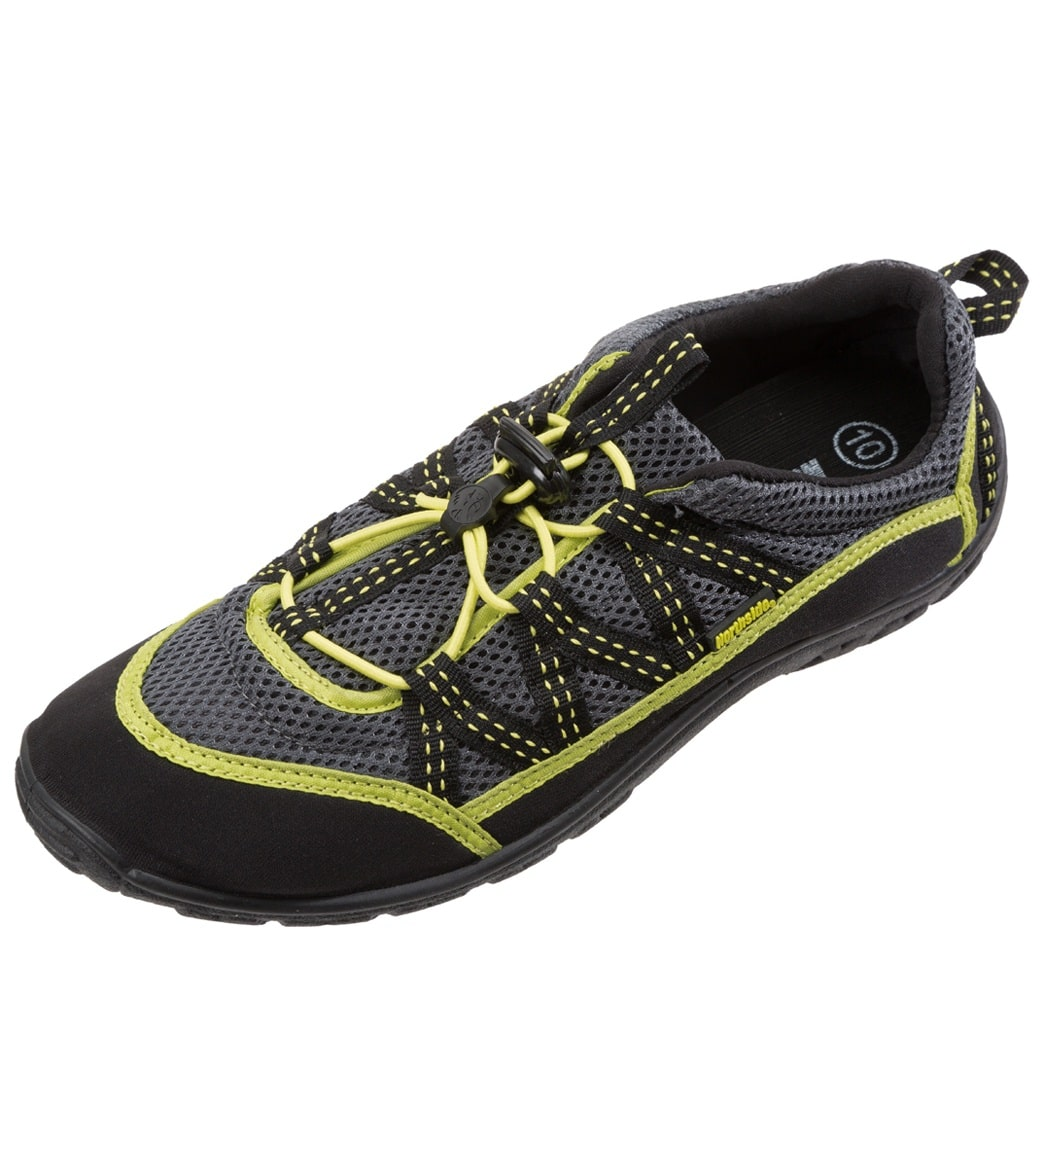 392059201 Northside Men's Brille II Water Shoe at SwimOutlet.com